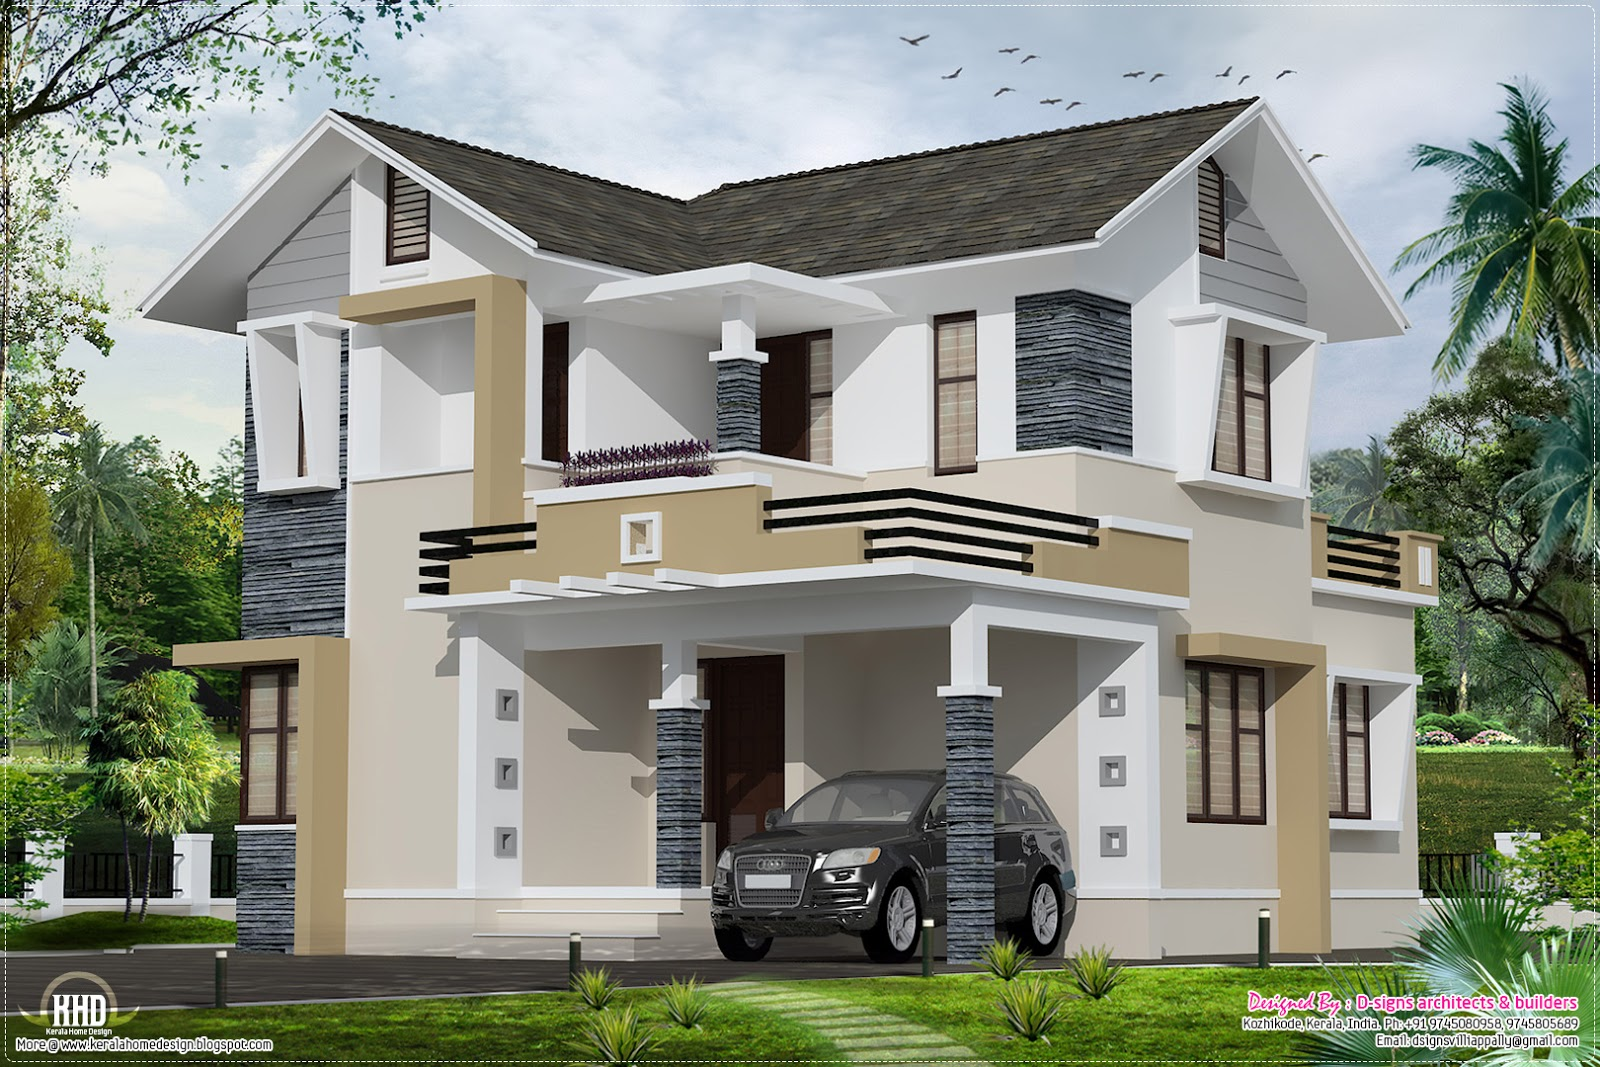 Stylish small home design kerala home design and floor plans - Home house design ...